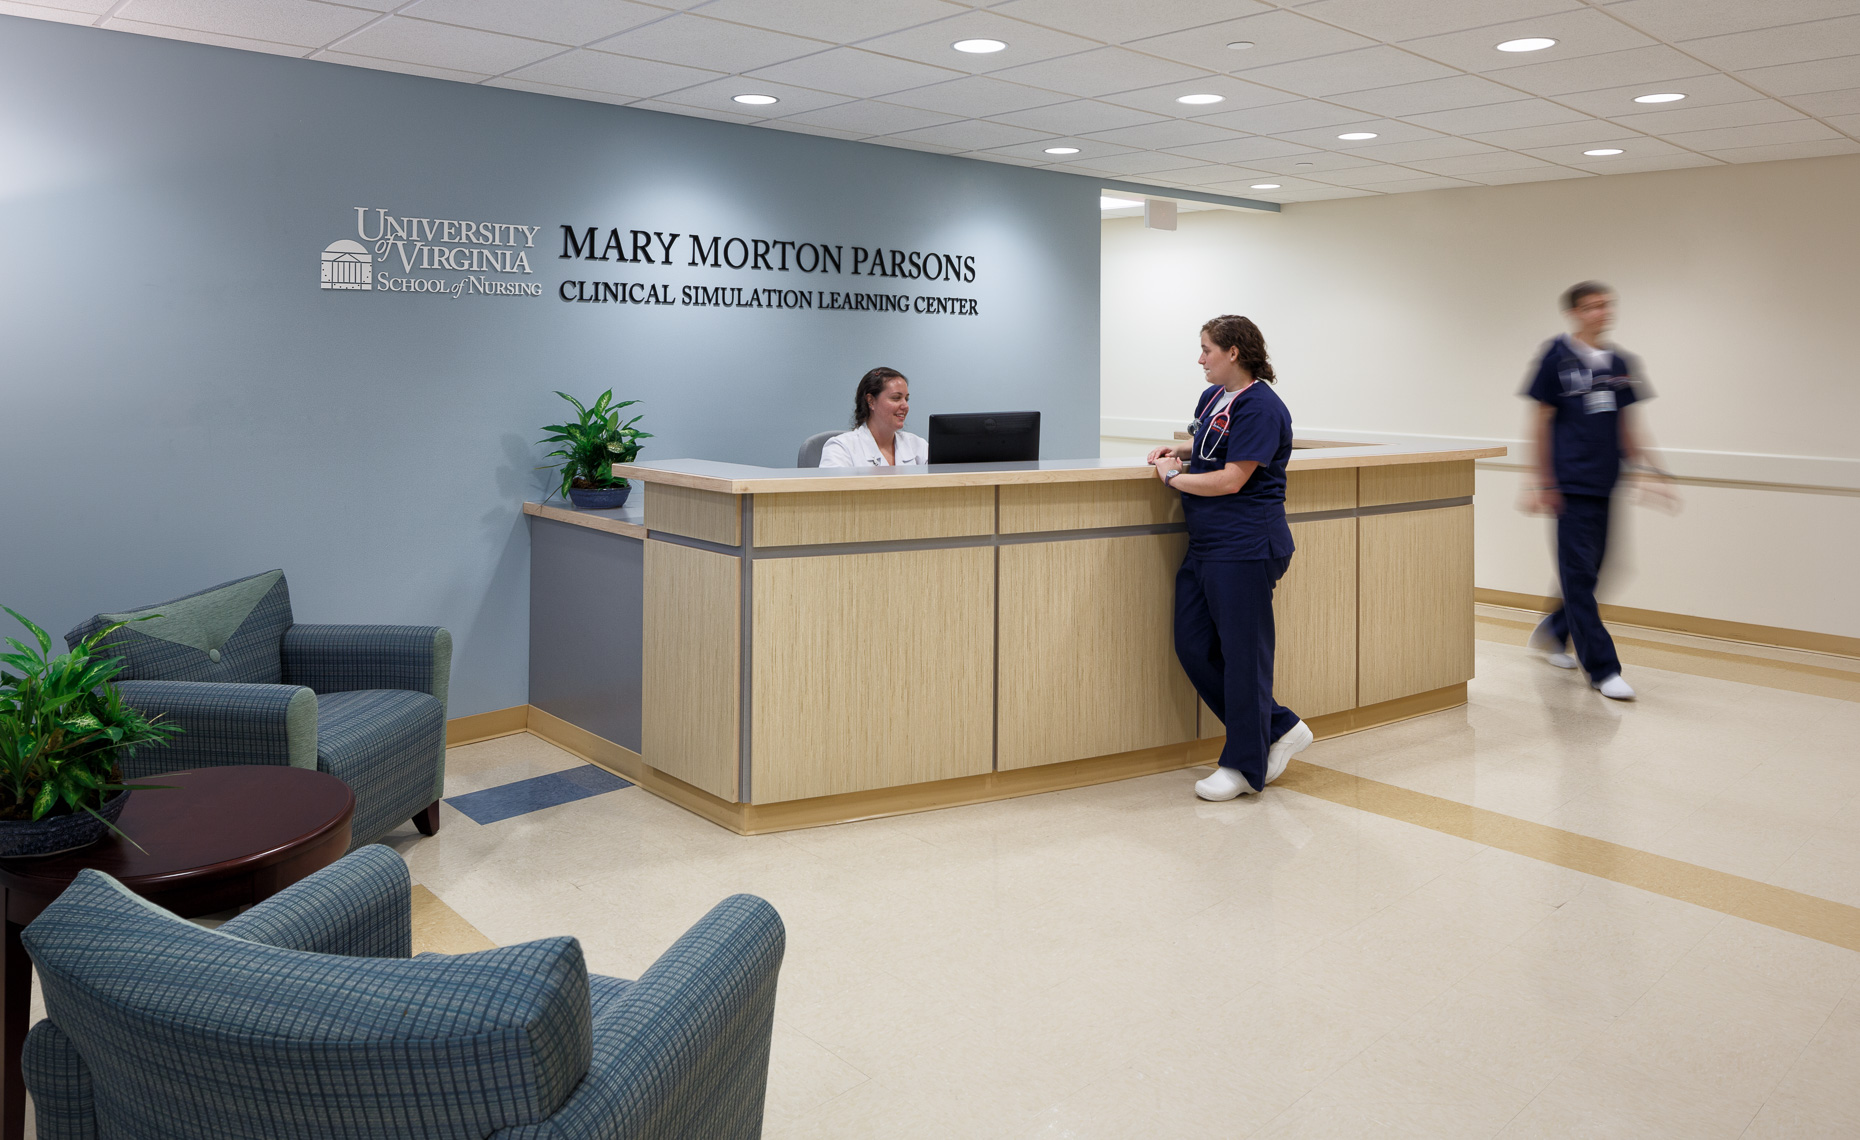 Virginia Hamrick Photography - Mary Morton Parsons McLeod Hall Clinical Simulation Learning Center at UVA  School of Nursing